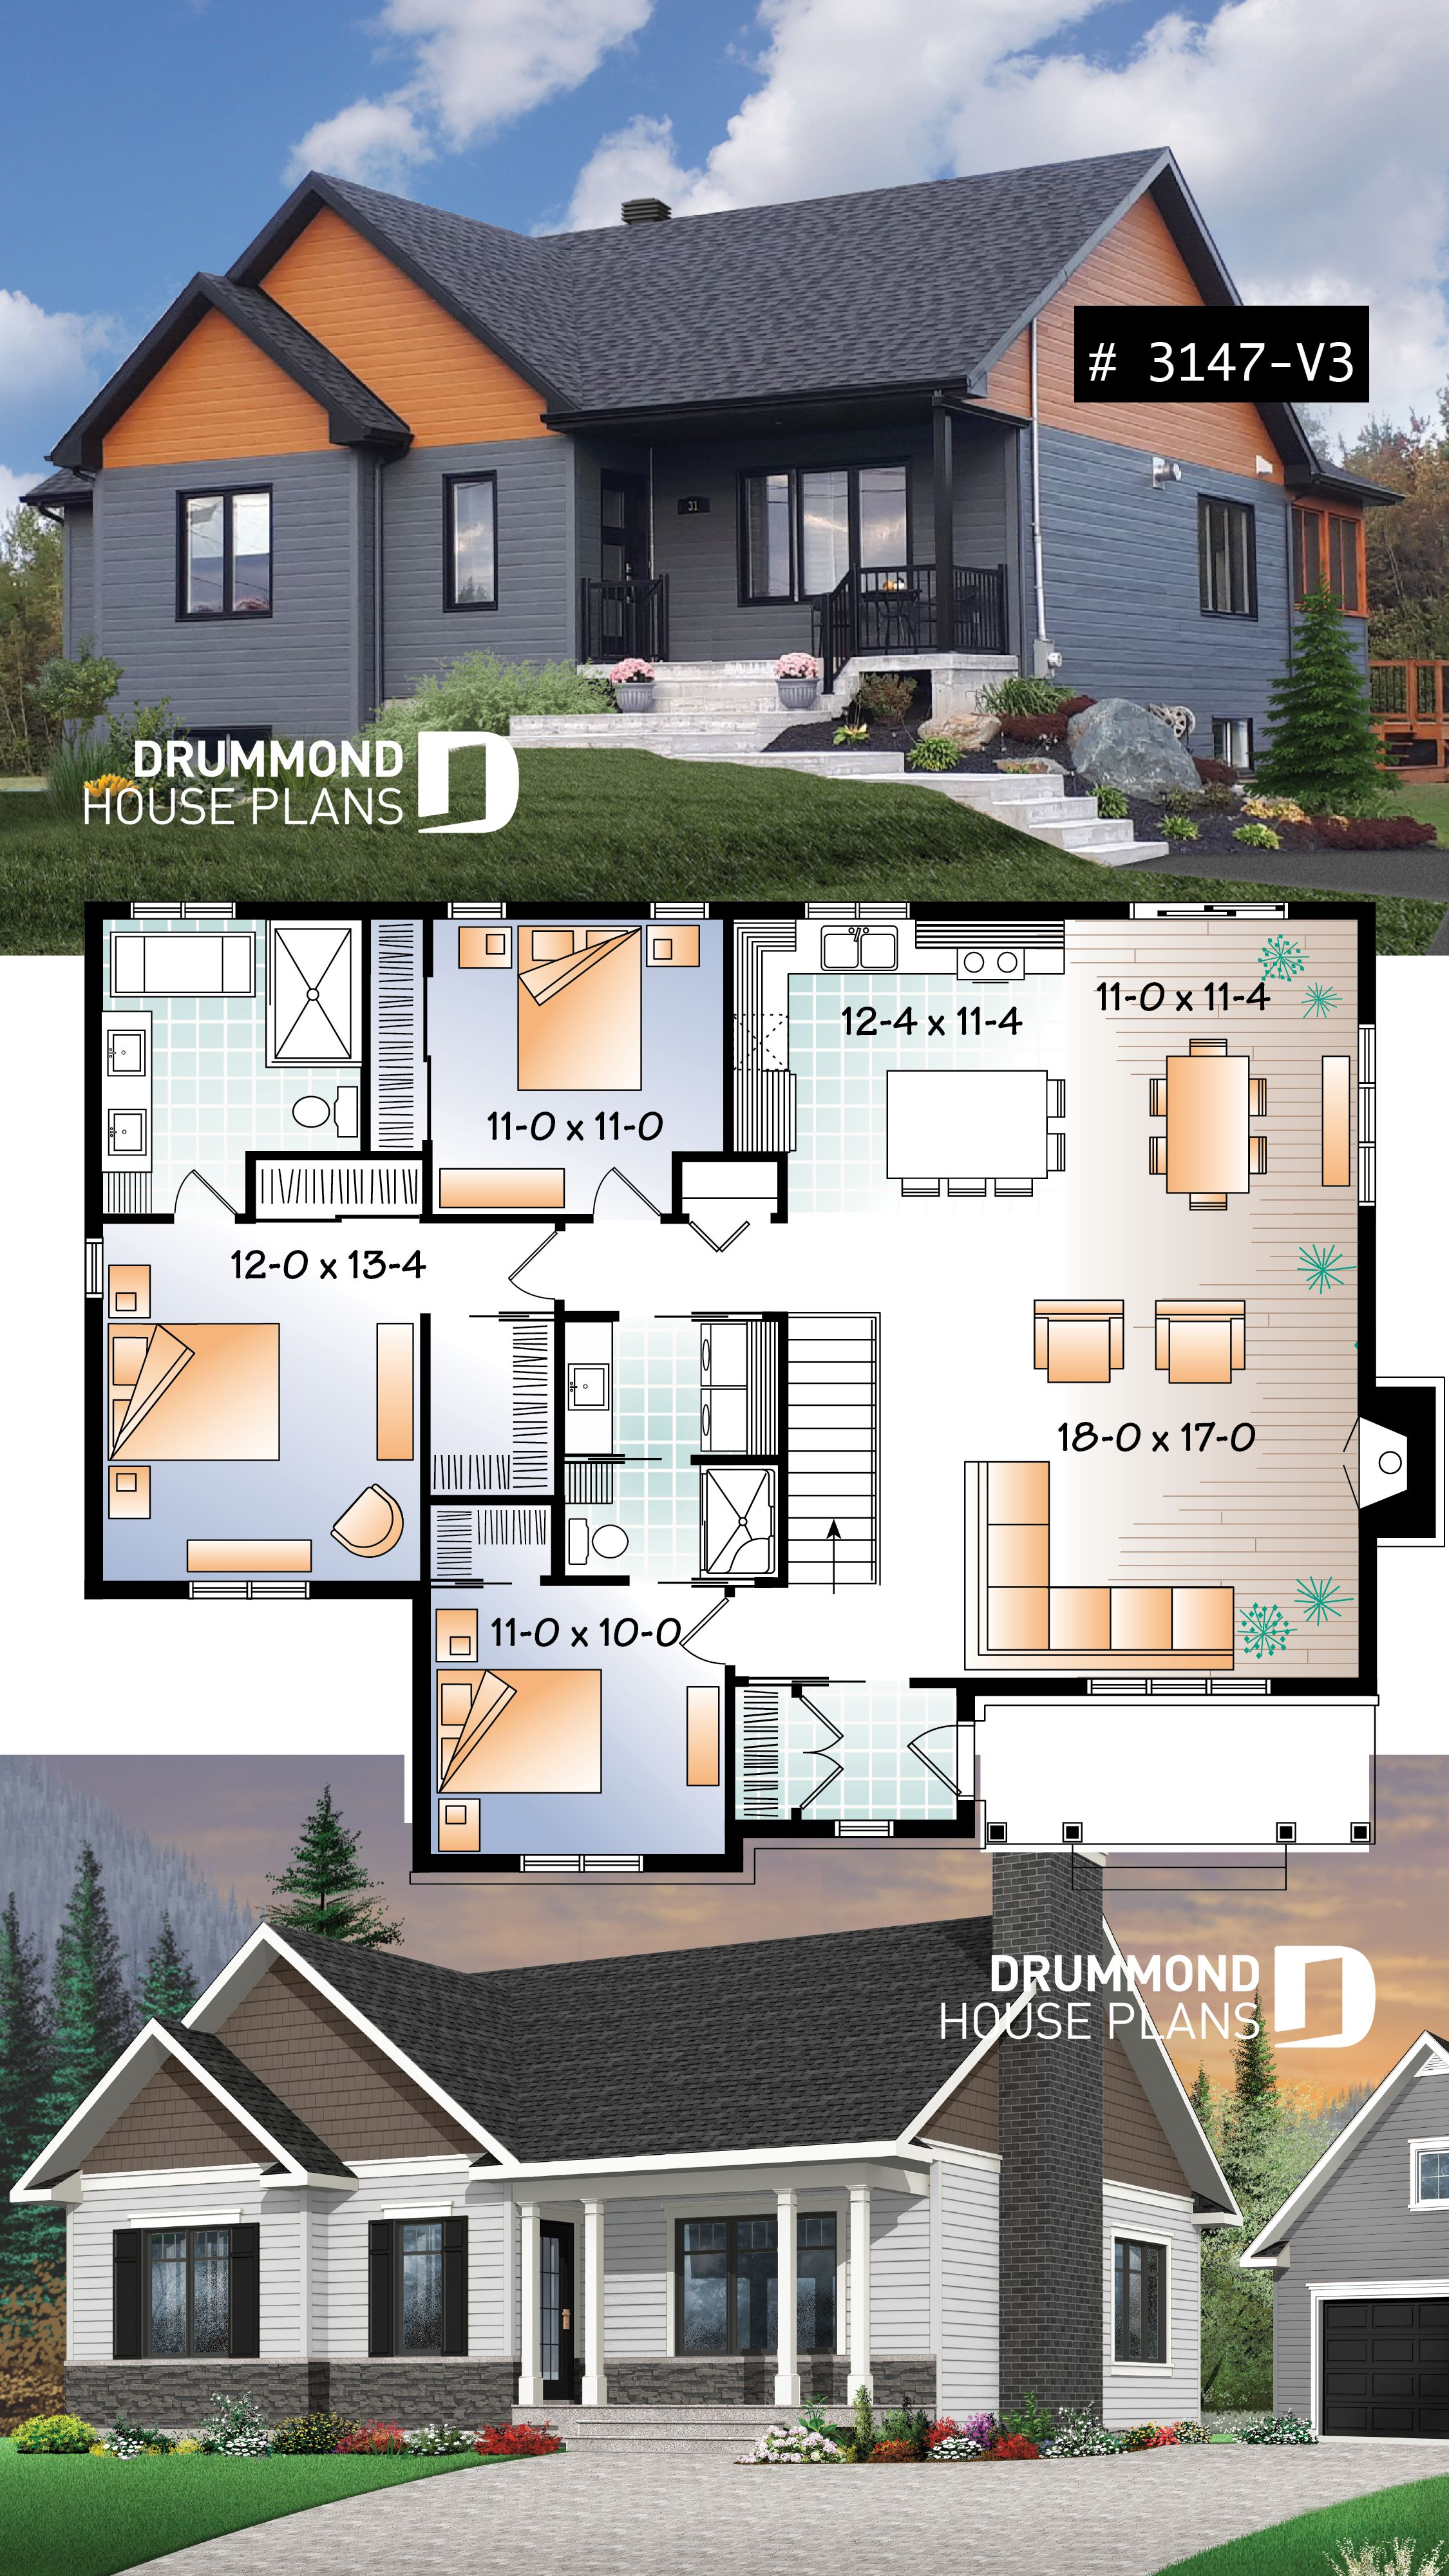 Transitional bungalow house plan with open floor plan large